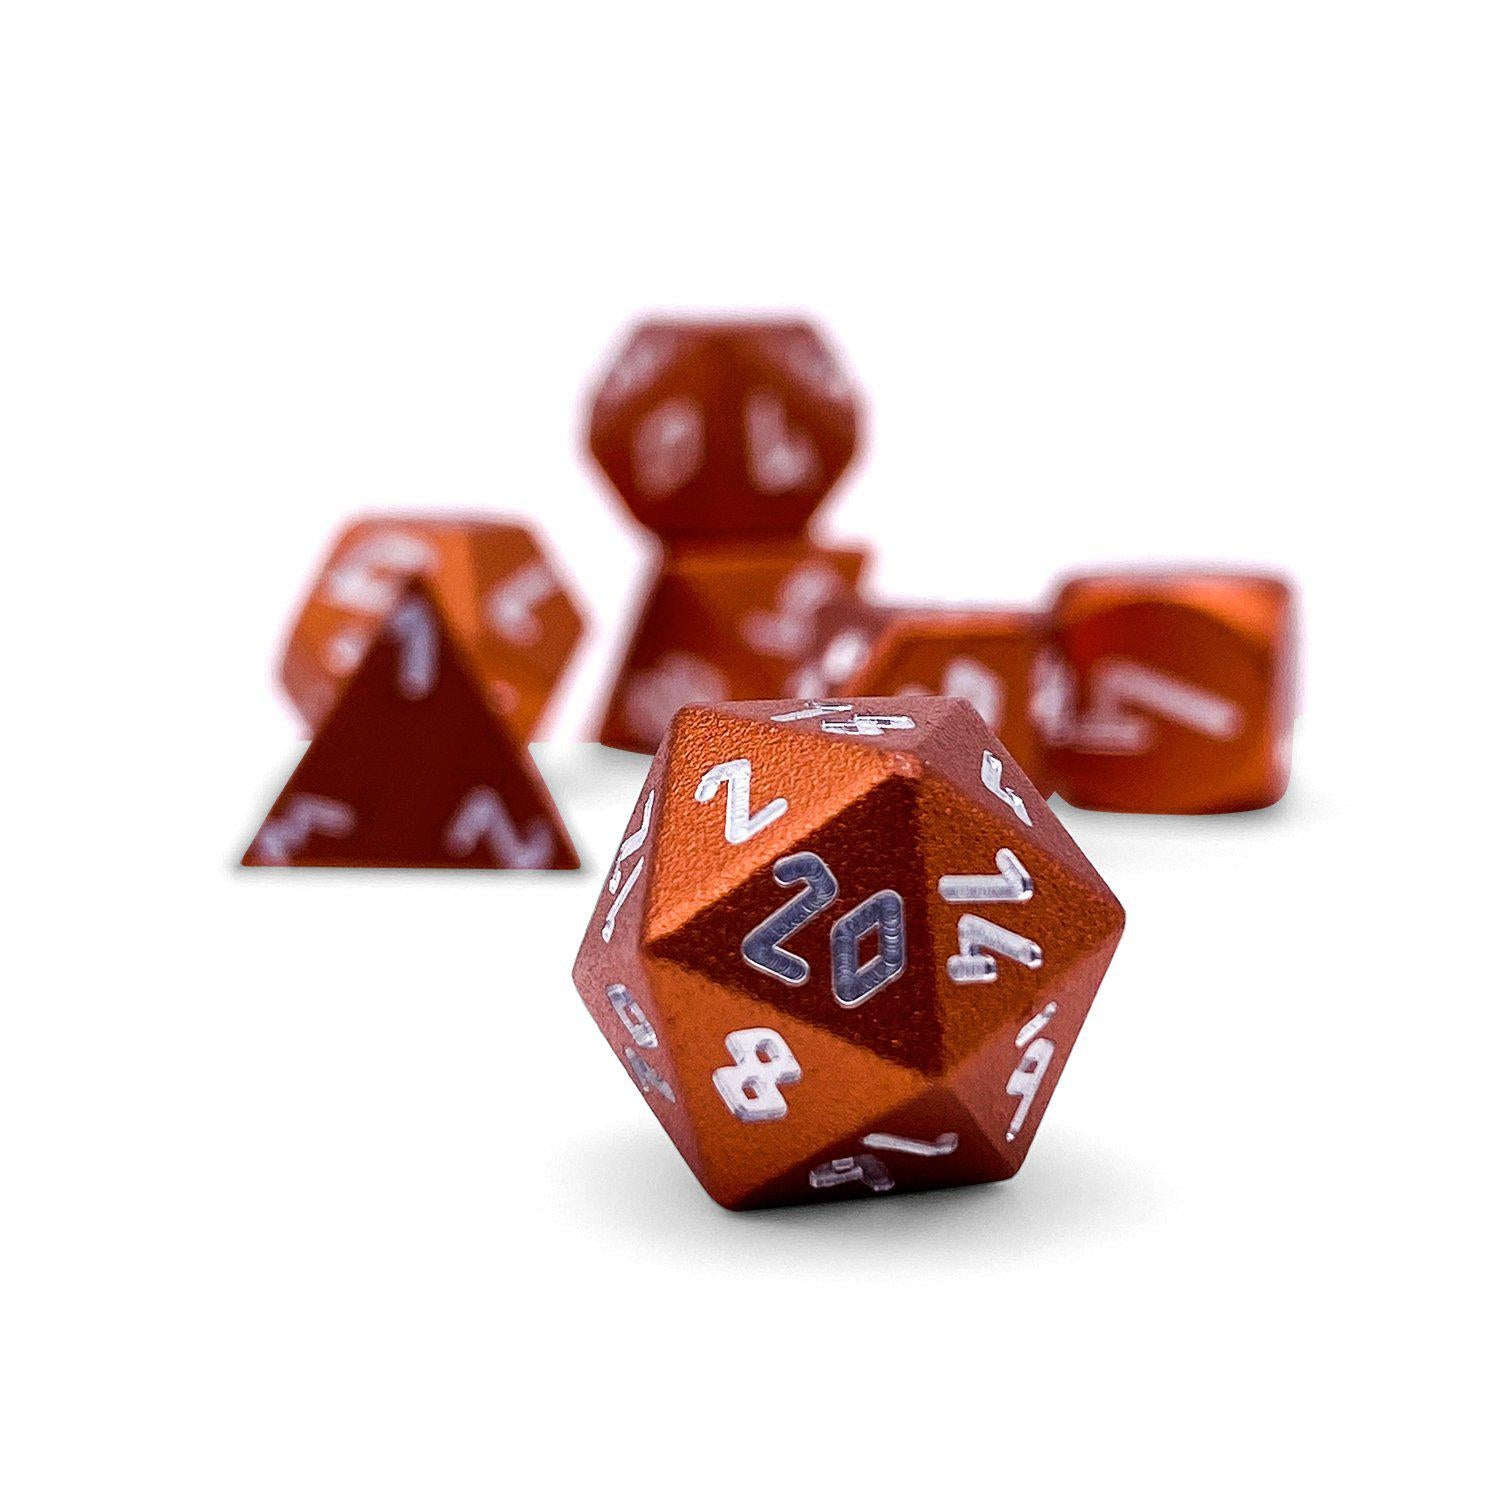 Chromatic Dragon Orange Pebble ™ Dice - 10mm 6063 Aircraft Grade Aluminum Mini